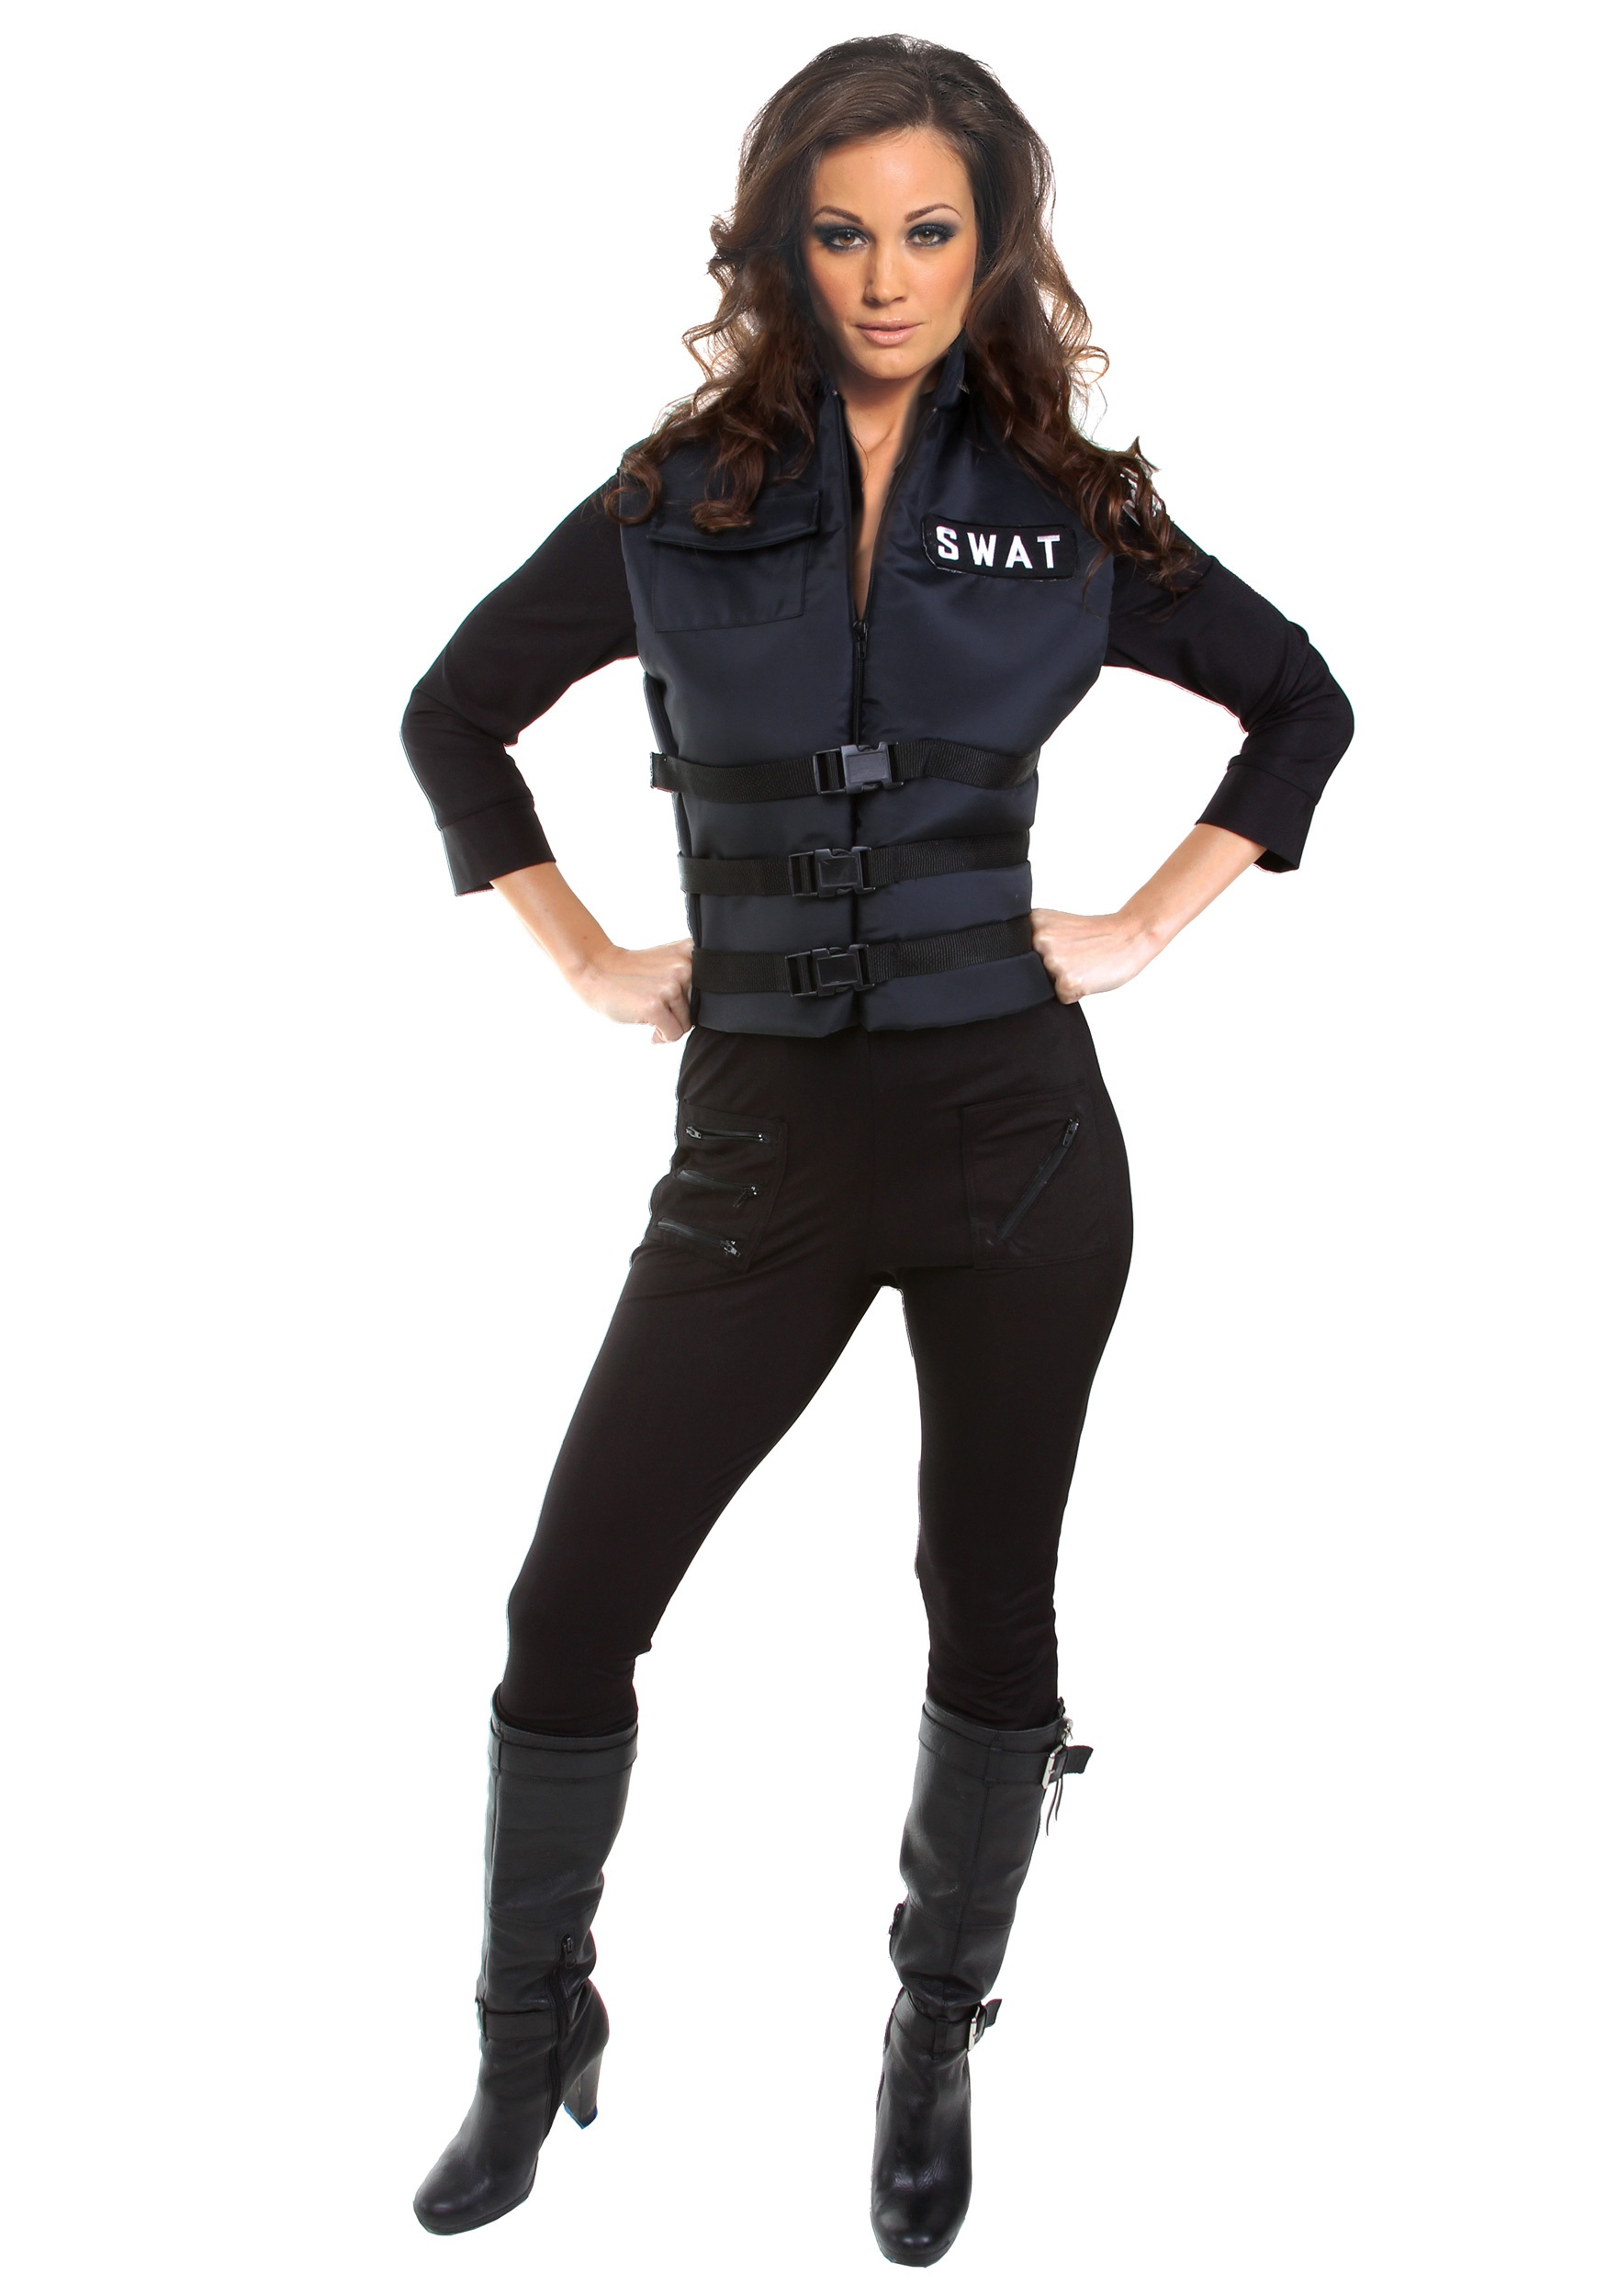 Seductive SWAT Girl Costume  sc 1 st  Halloween Costume & Seductive SWAT Girl Costume - Womenu0027s Sexy Police Officer Costume Ideas